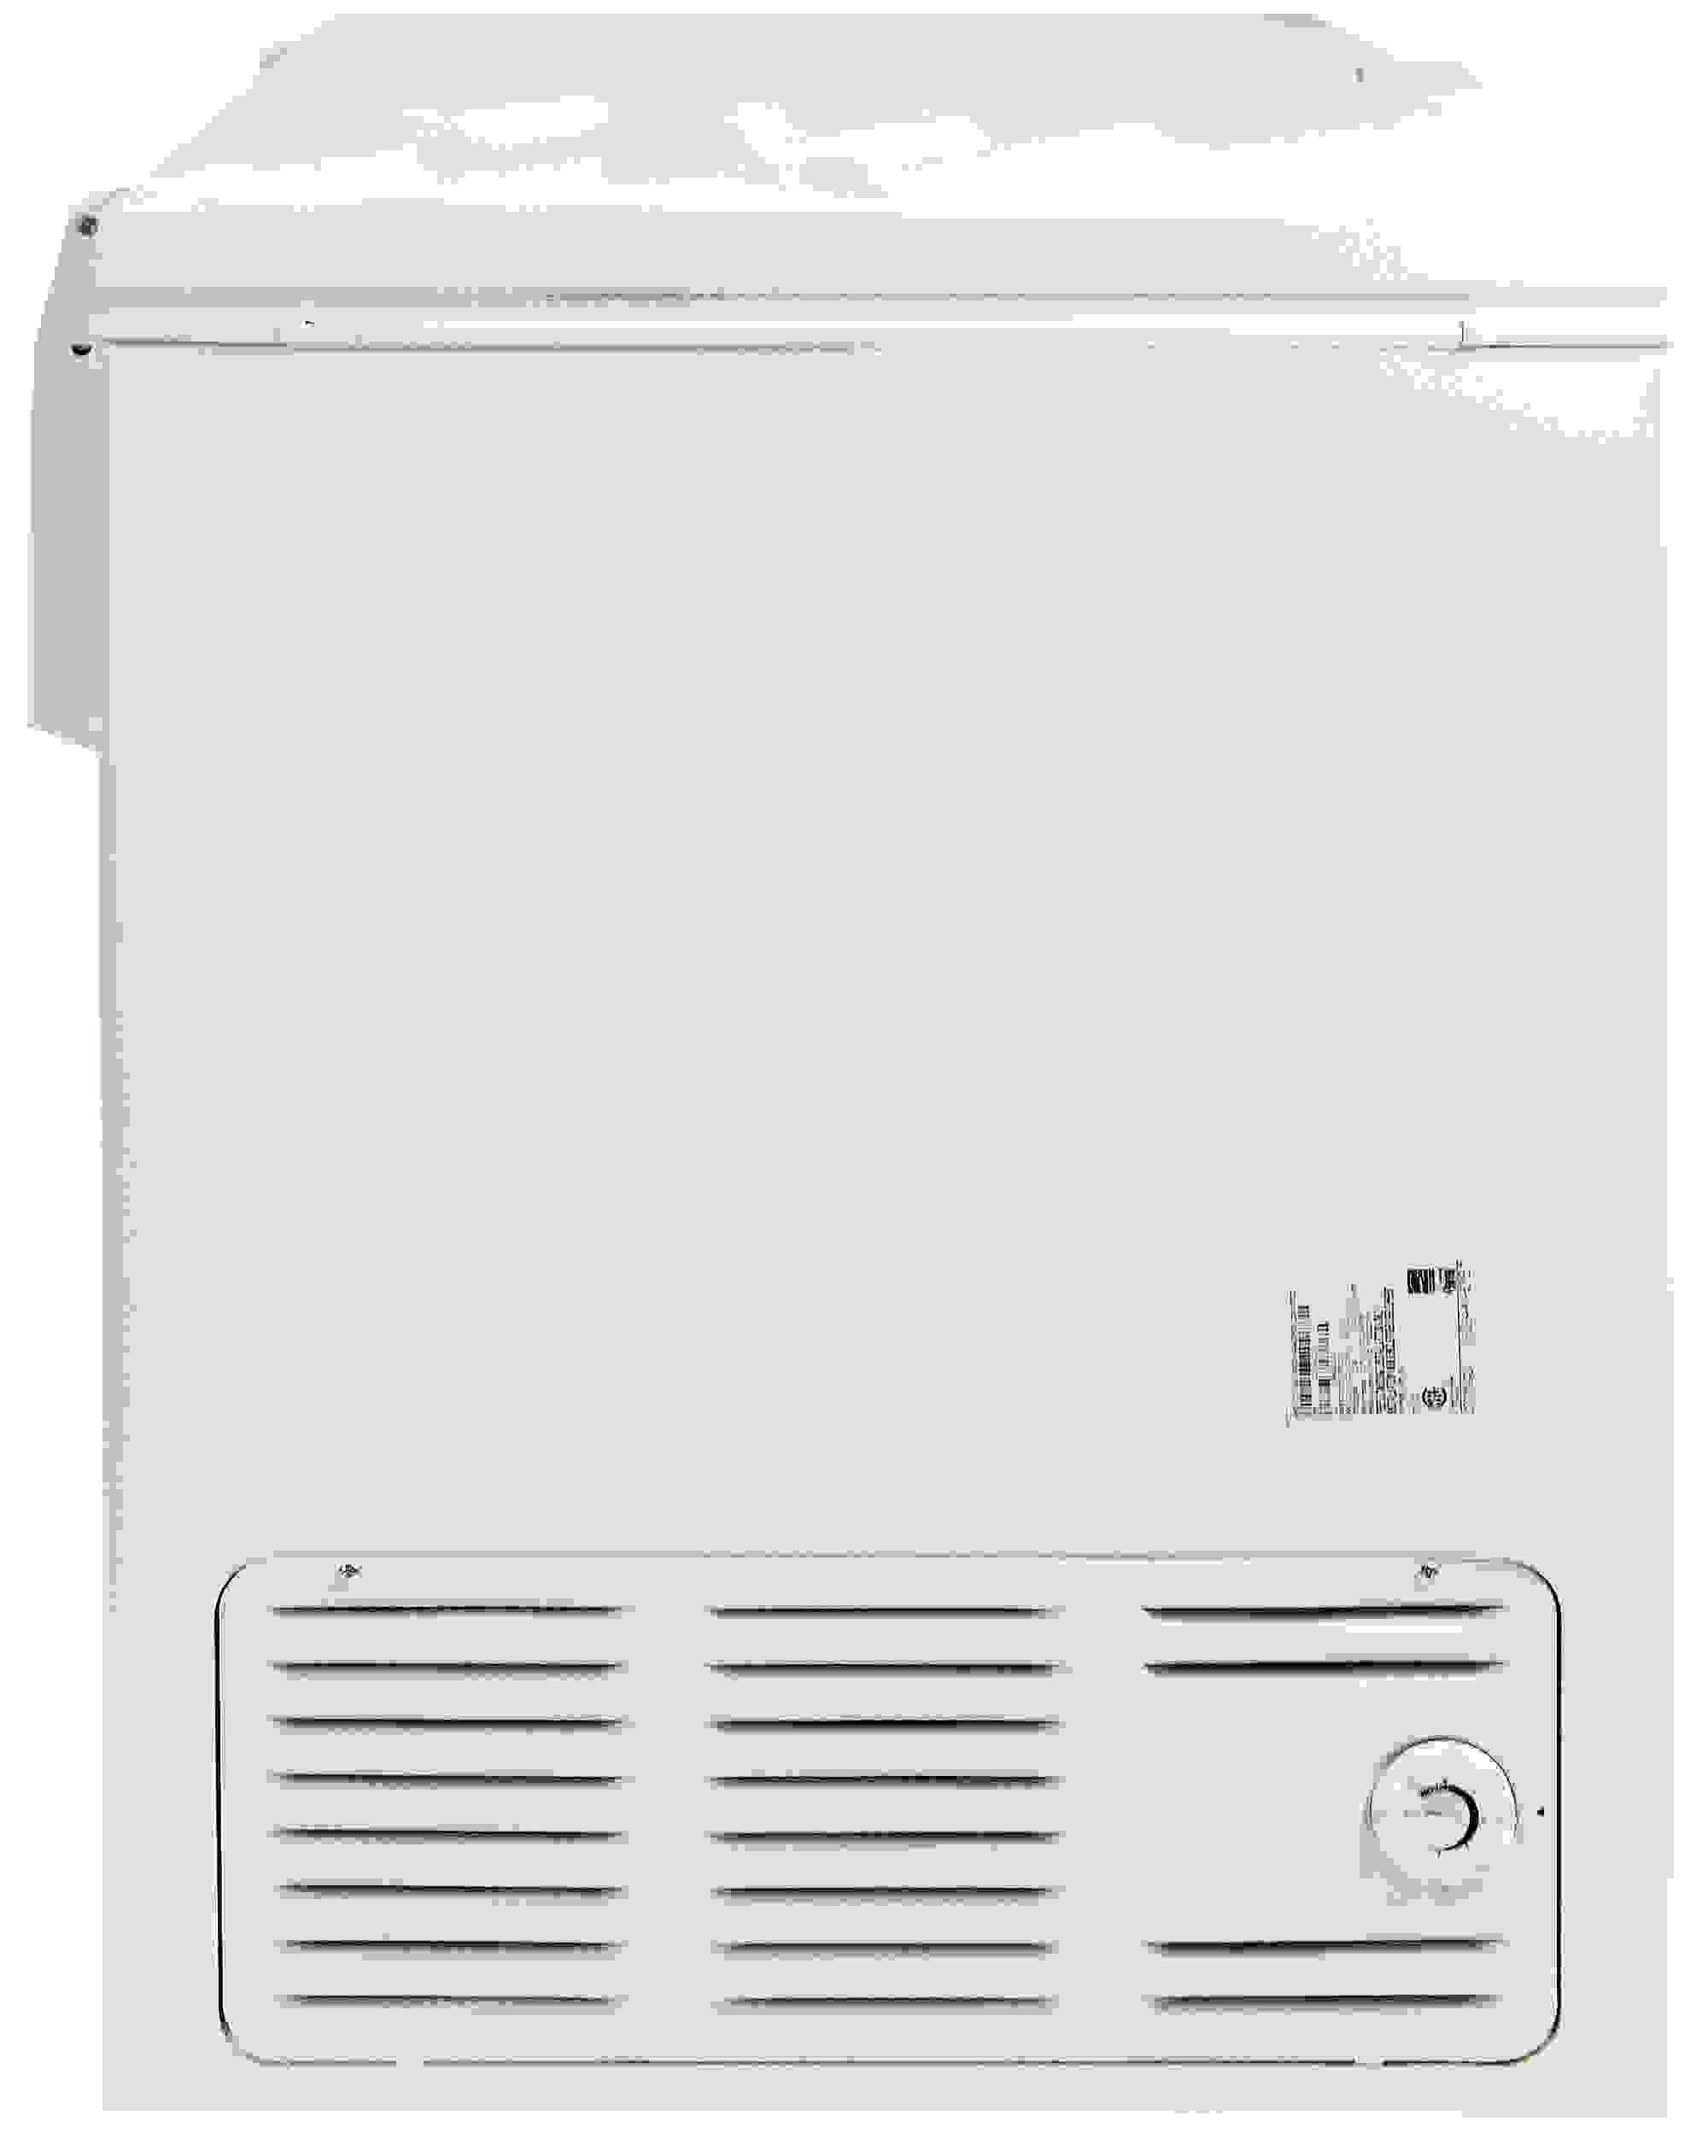 The controls are found on the left side of the Kenmore 16542, along with an air vent; the right side is featureless.